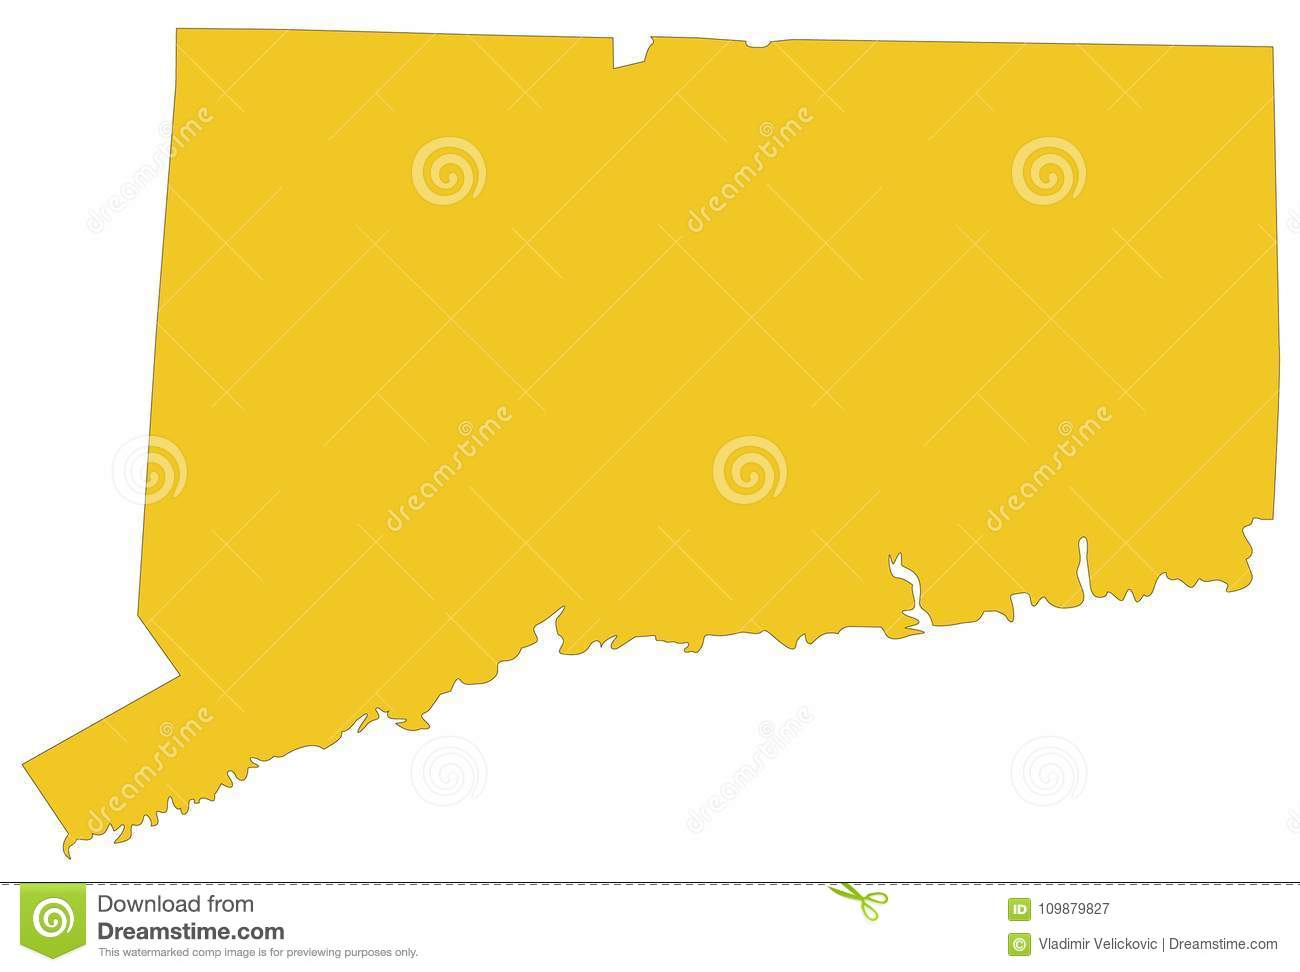 Connecticut Map - State Of The Northeastern United States ...